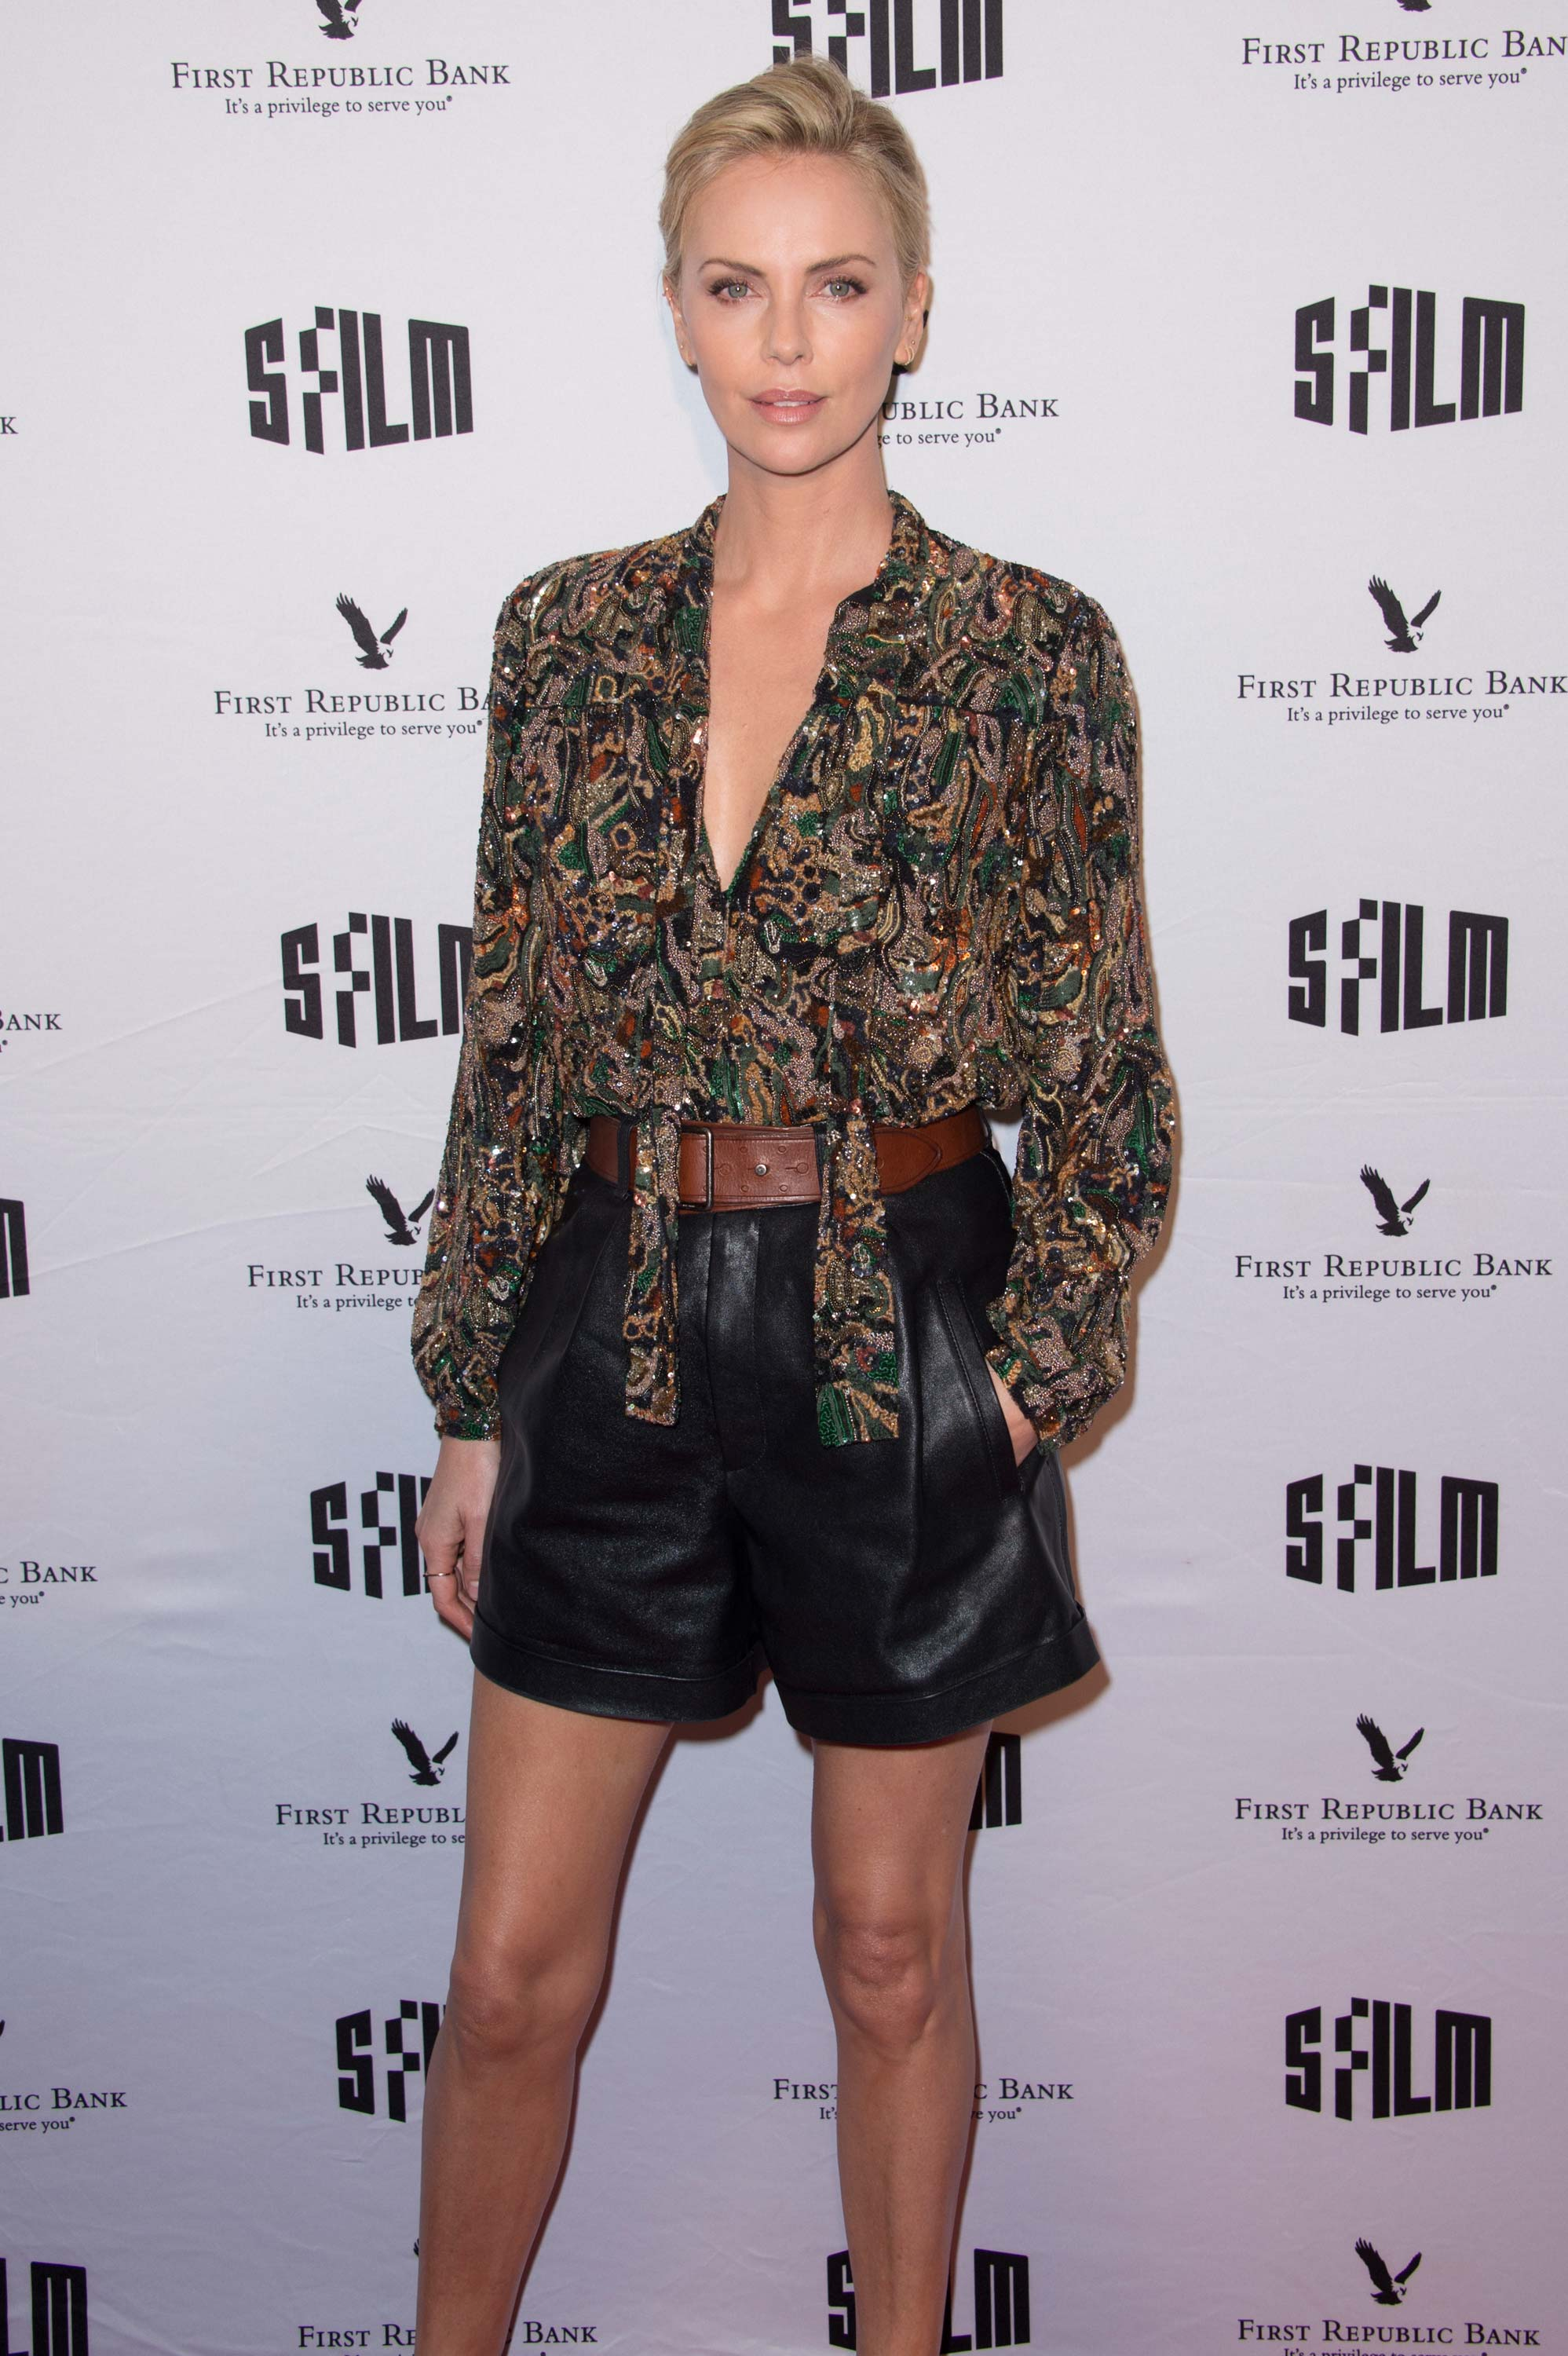 Charlize Theron attends 2018 San Francisco Film Festival